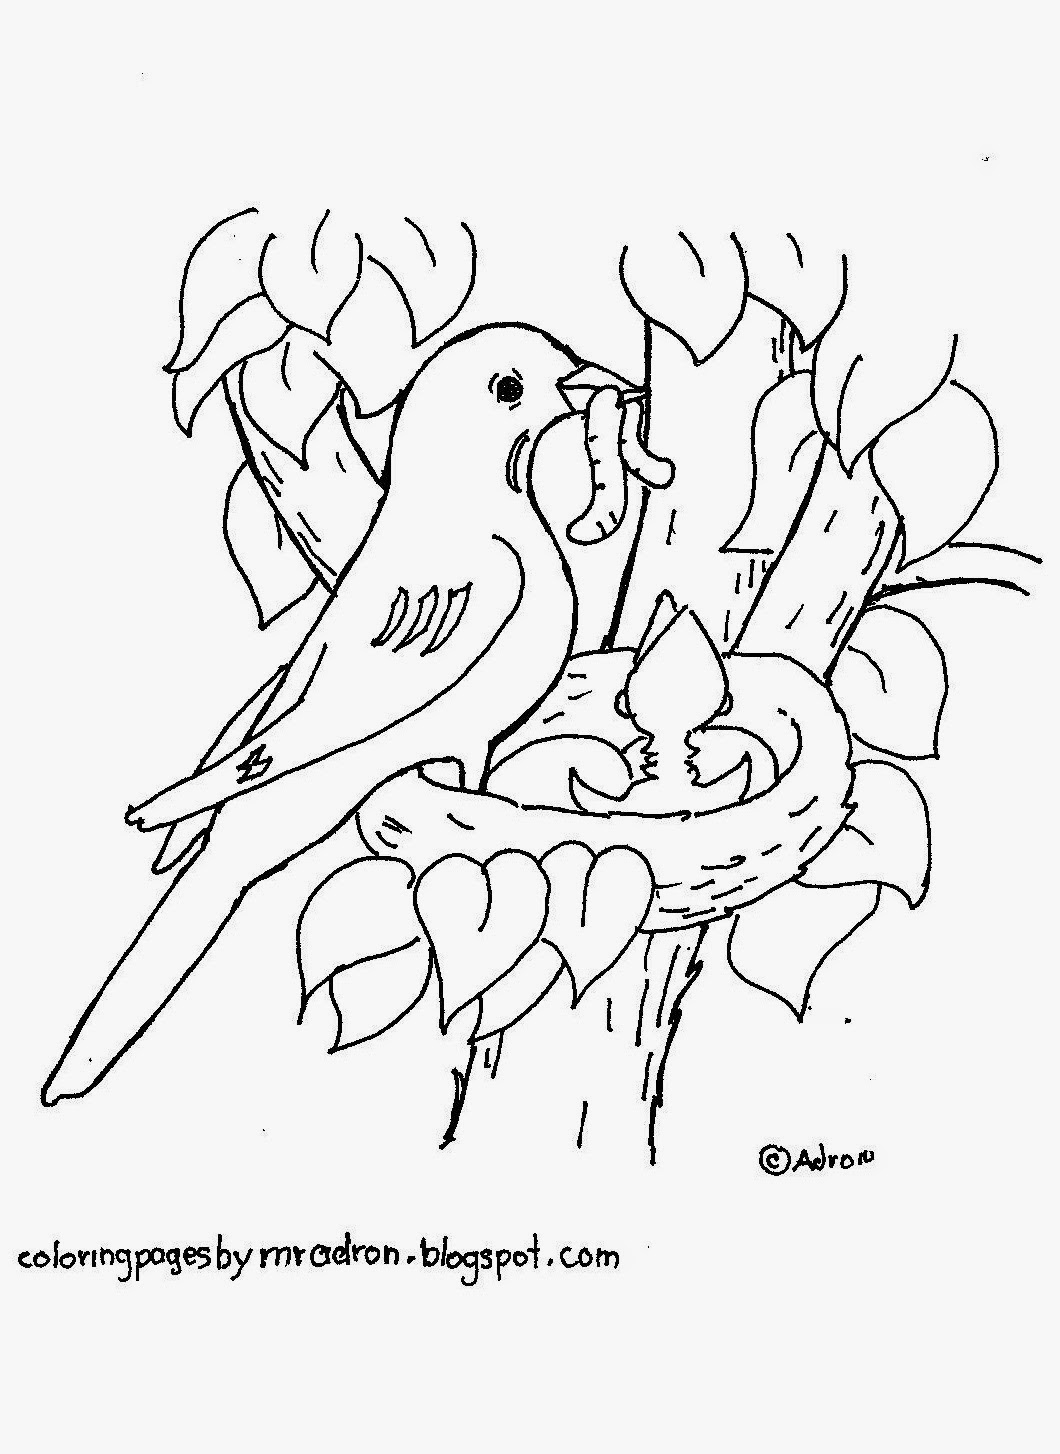 Coloring Pages for Kids by Mr. Adron: Robin In Nest Free Coloring Page